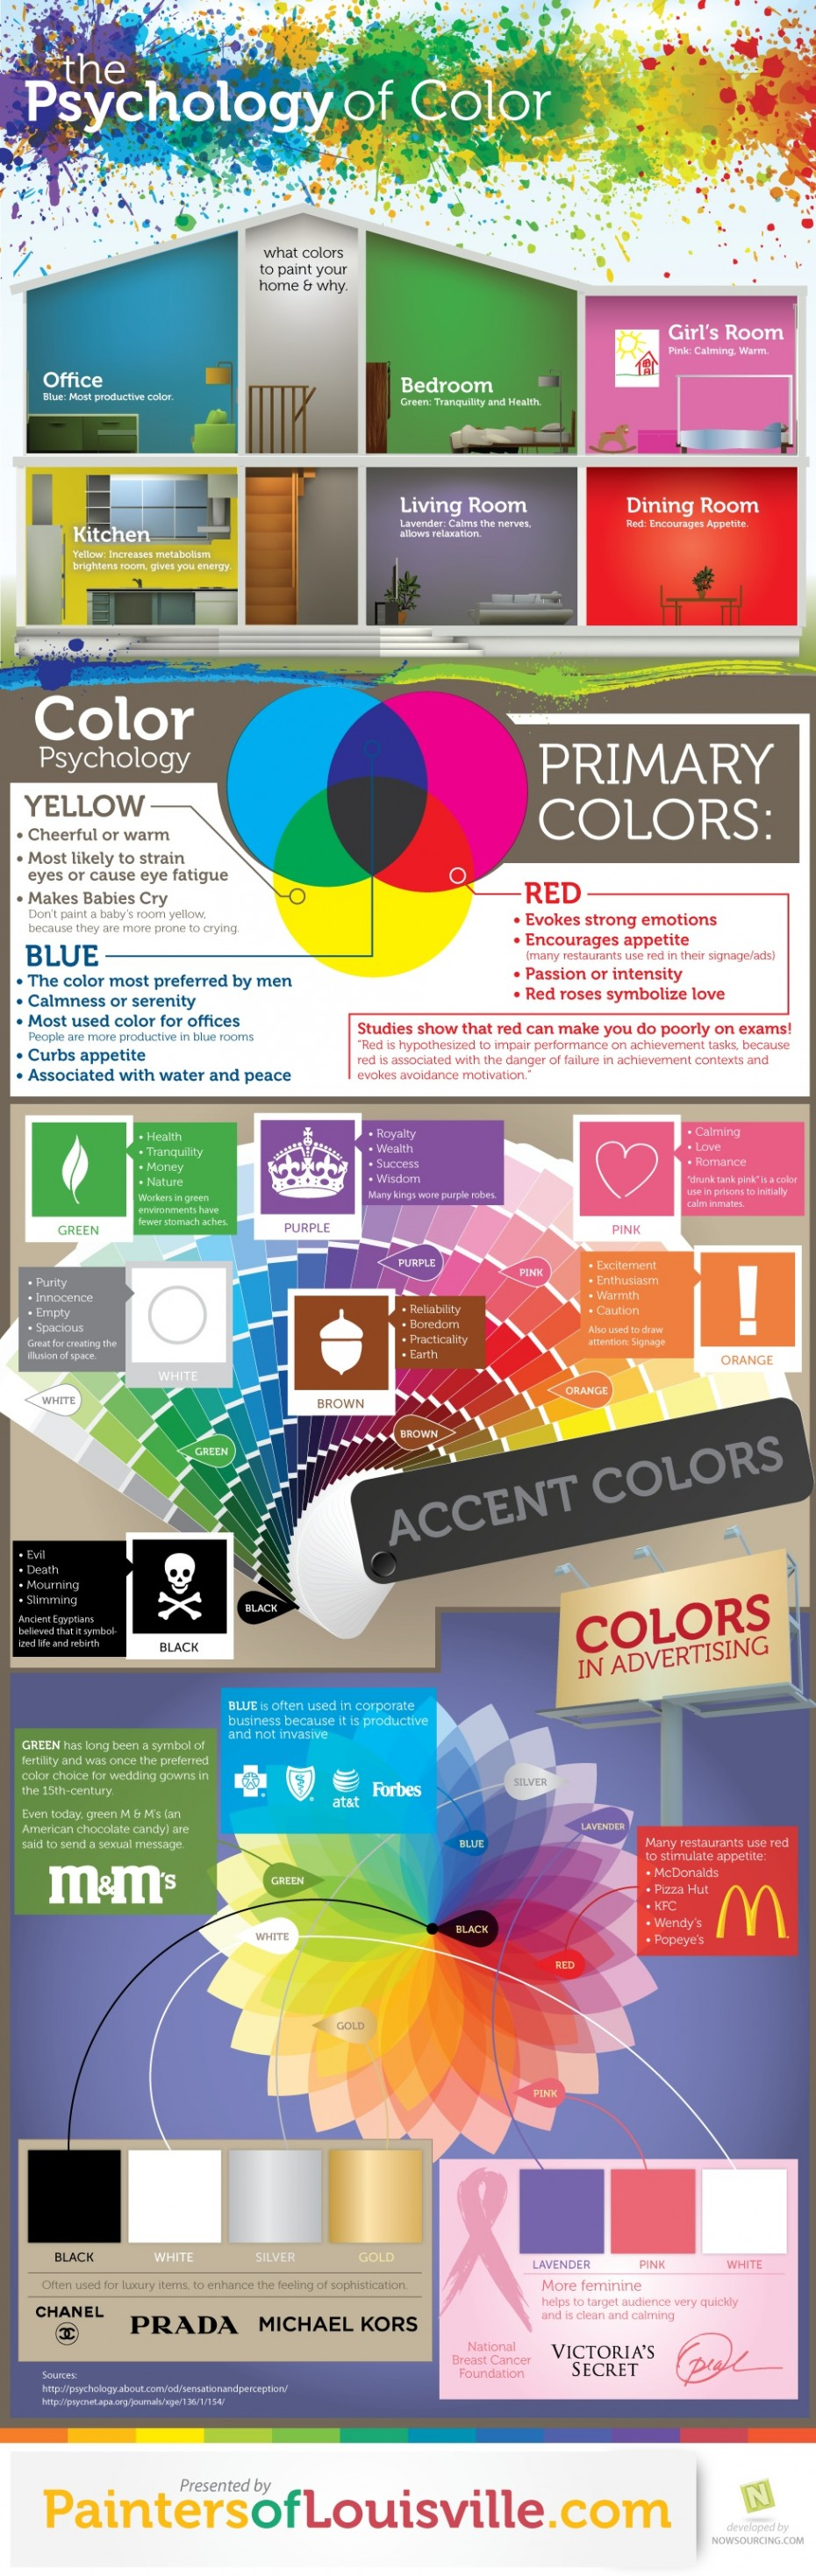 Color Psychology for Interior Spaces infographic Art Pinterest